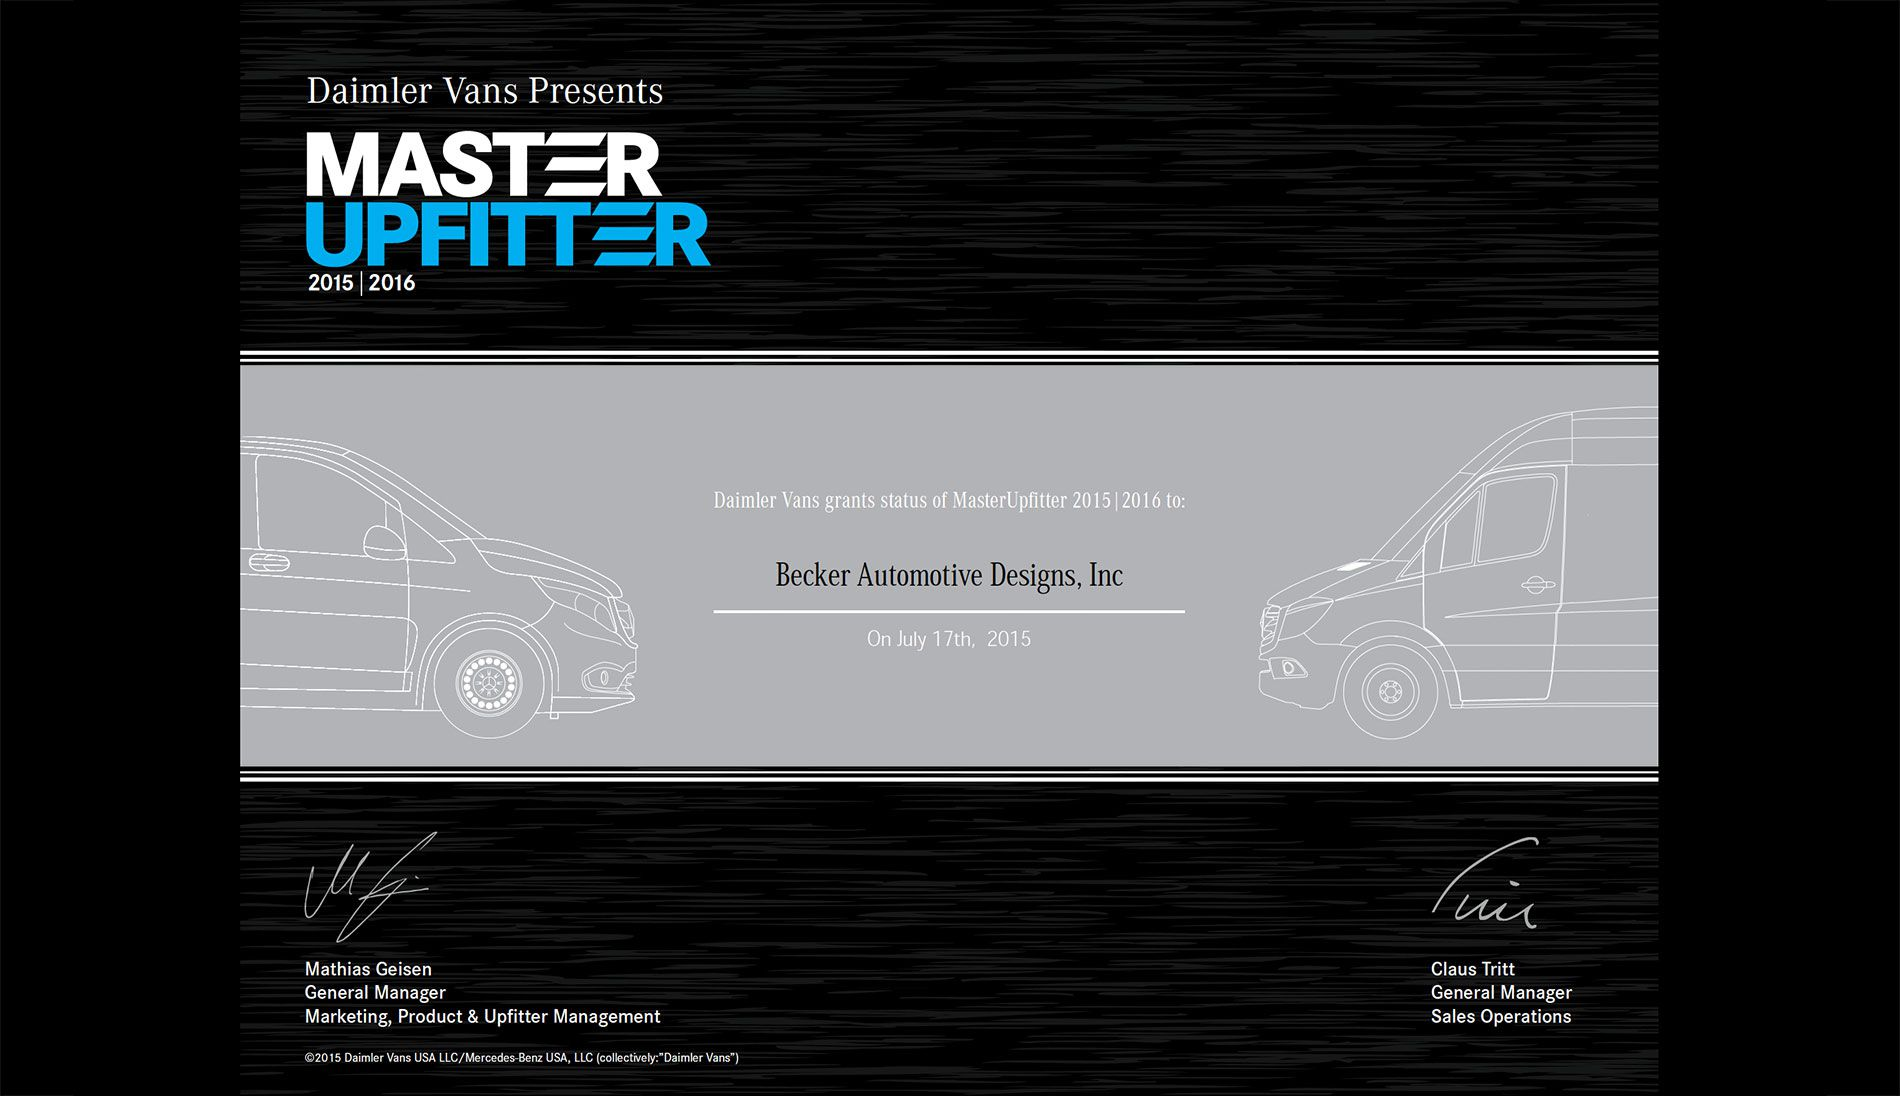 Becker Automotive Design Luxury Transport Coaches Sprinter Van Upfitters Wiring Diagrams Approved Master Upfitter Of Mercedes Benz Manufactured Vans The Designation Is Awarded By Daimler To Select Few Firms Who